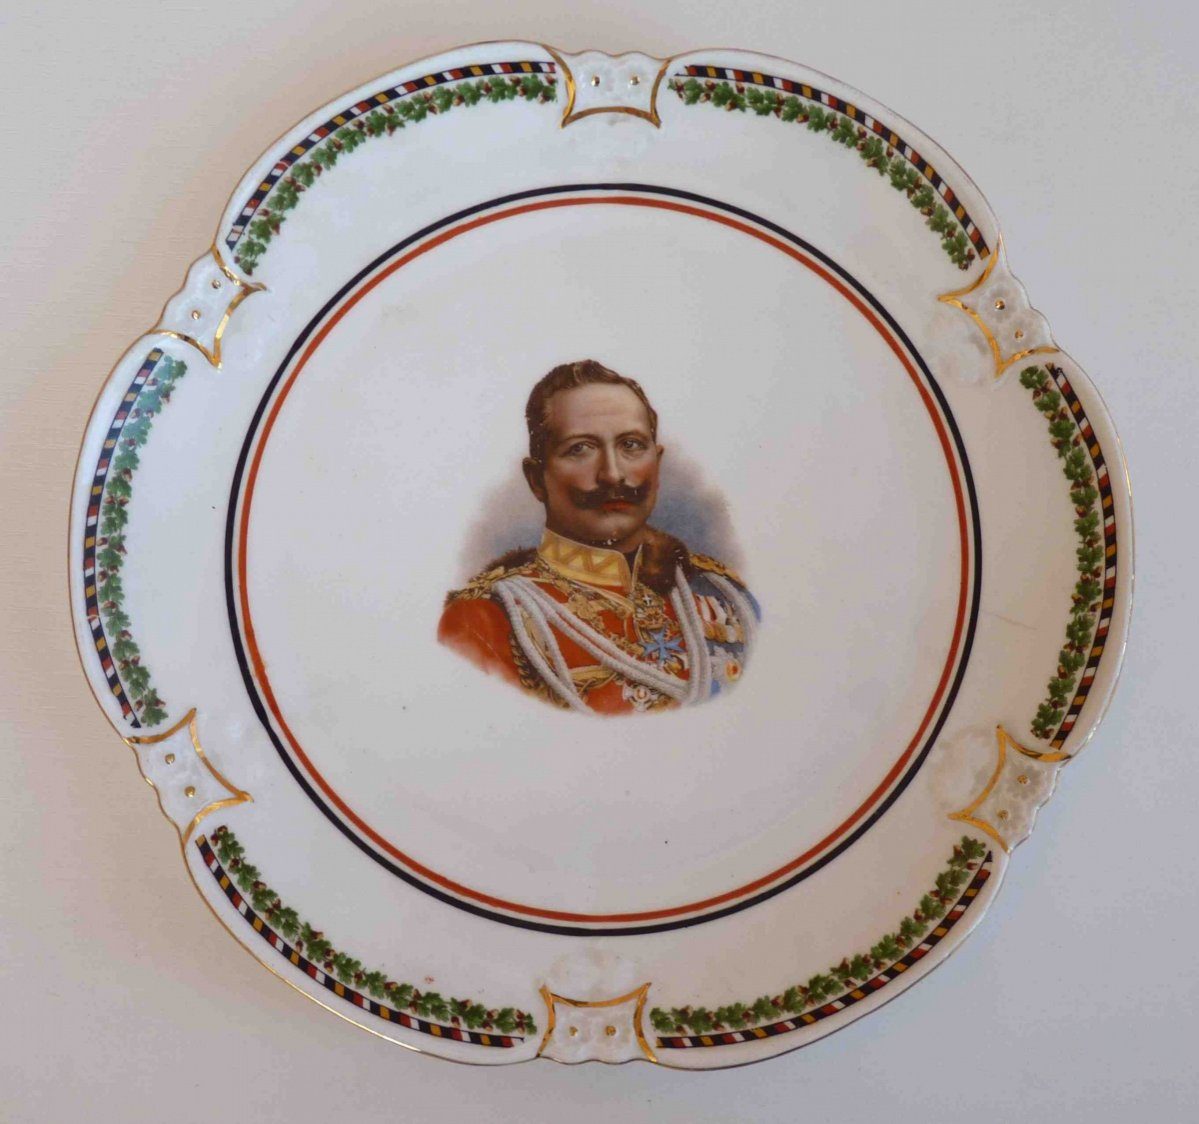 Decorated plate with Kaiser Wilhelm